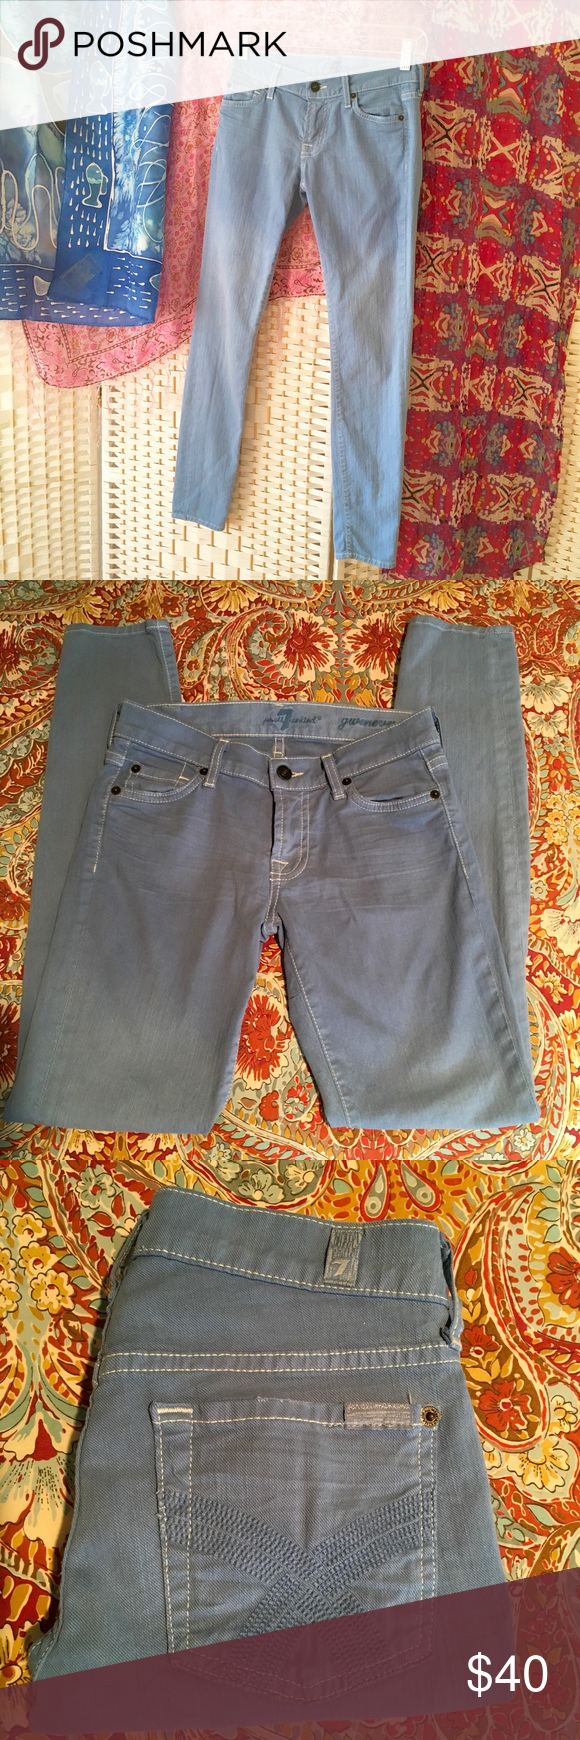 """7 For All Mankind Gwenevere Skinny Jean Skinny stretch Jean in Sky Blue. Cotton/ 2% spandex.  Contrast white stitching. 5 Pocket, stitched logo on back pockets. Very light gradation of fading below thigh. Inseam 28"""". Length 35.5"""". Rise 7"""". Ankle opening 10 1/4"""". Flat lay waist measurement 13"""" across. EUC. 7 For All Mankind Jeans Skinny"""